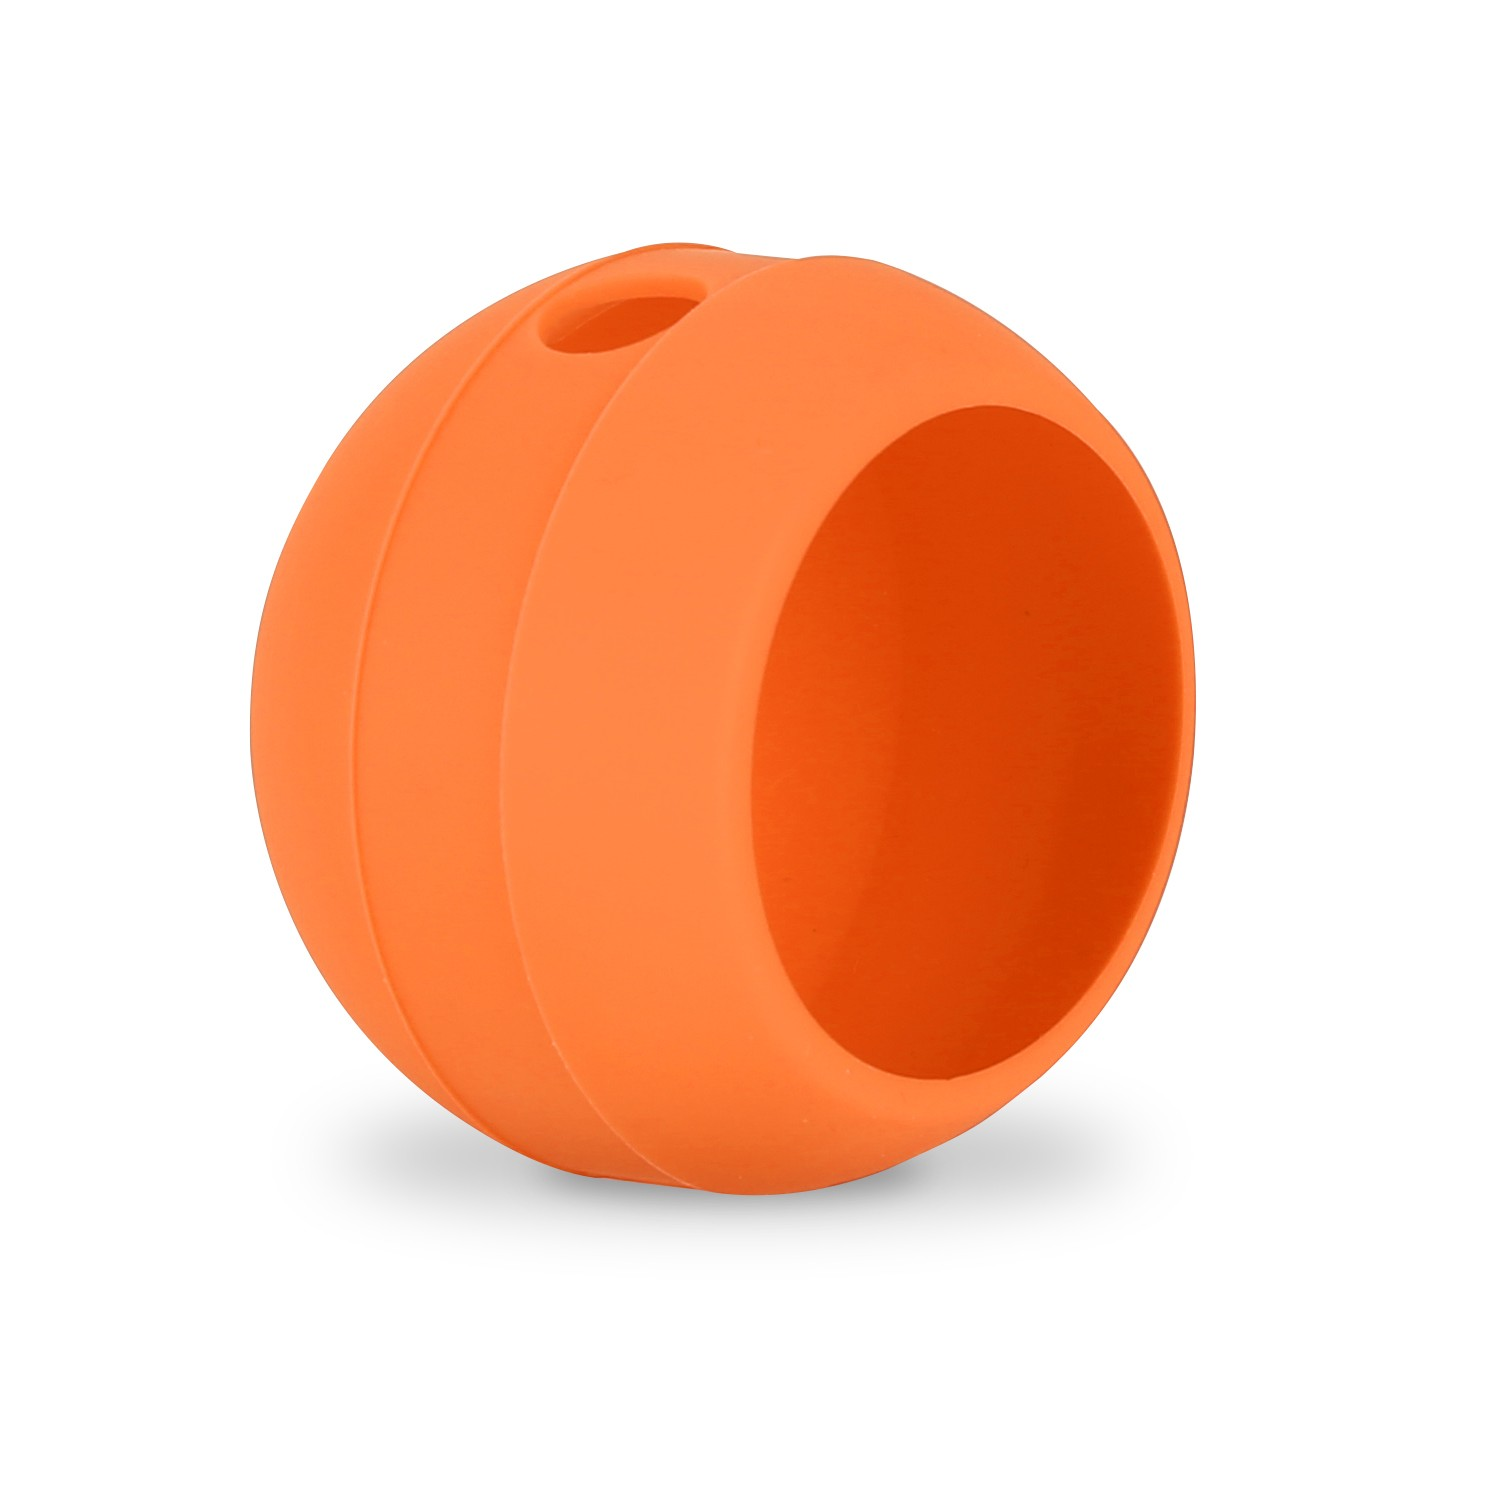 Silicone Skin for Kalacam Orange